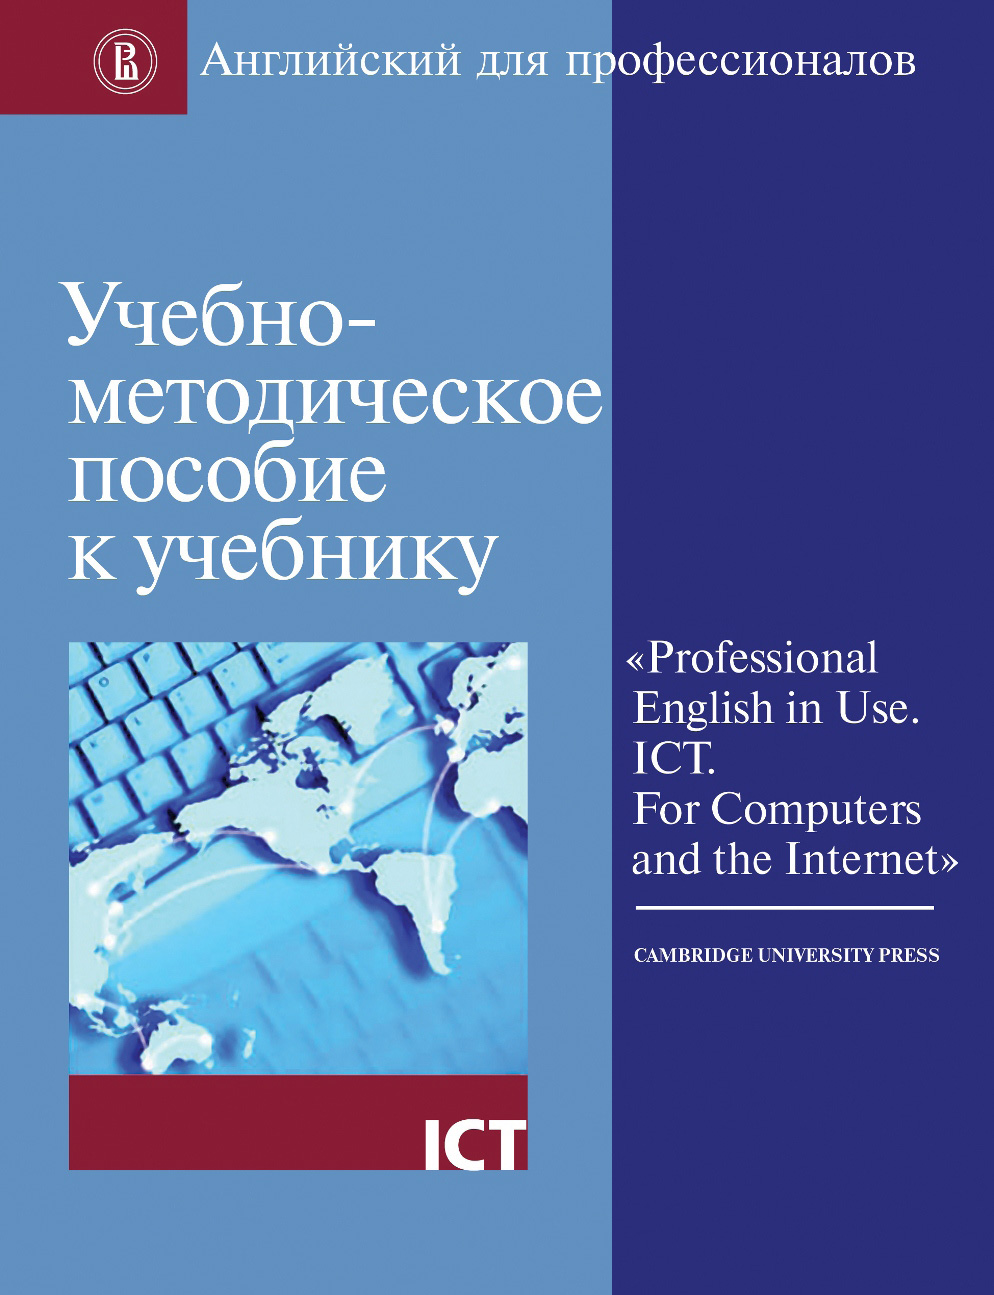 Коллектив авторов Учебно-методическое пособие к учебнику «Professional English in Use. ICT. For Computers and the Internet» fabré elena marco esteras santiago remacha professional english inuse ict